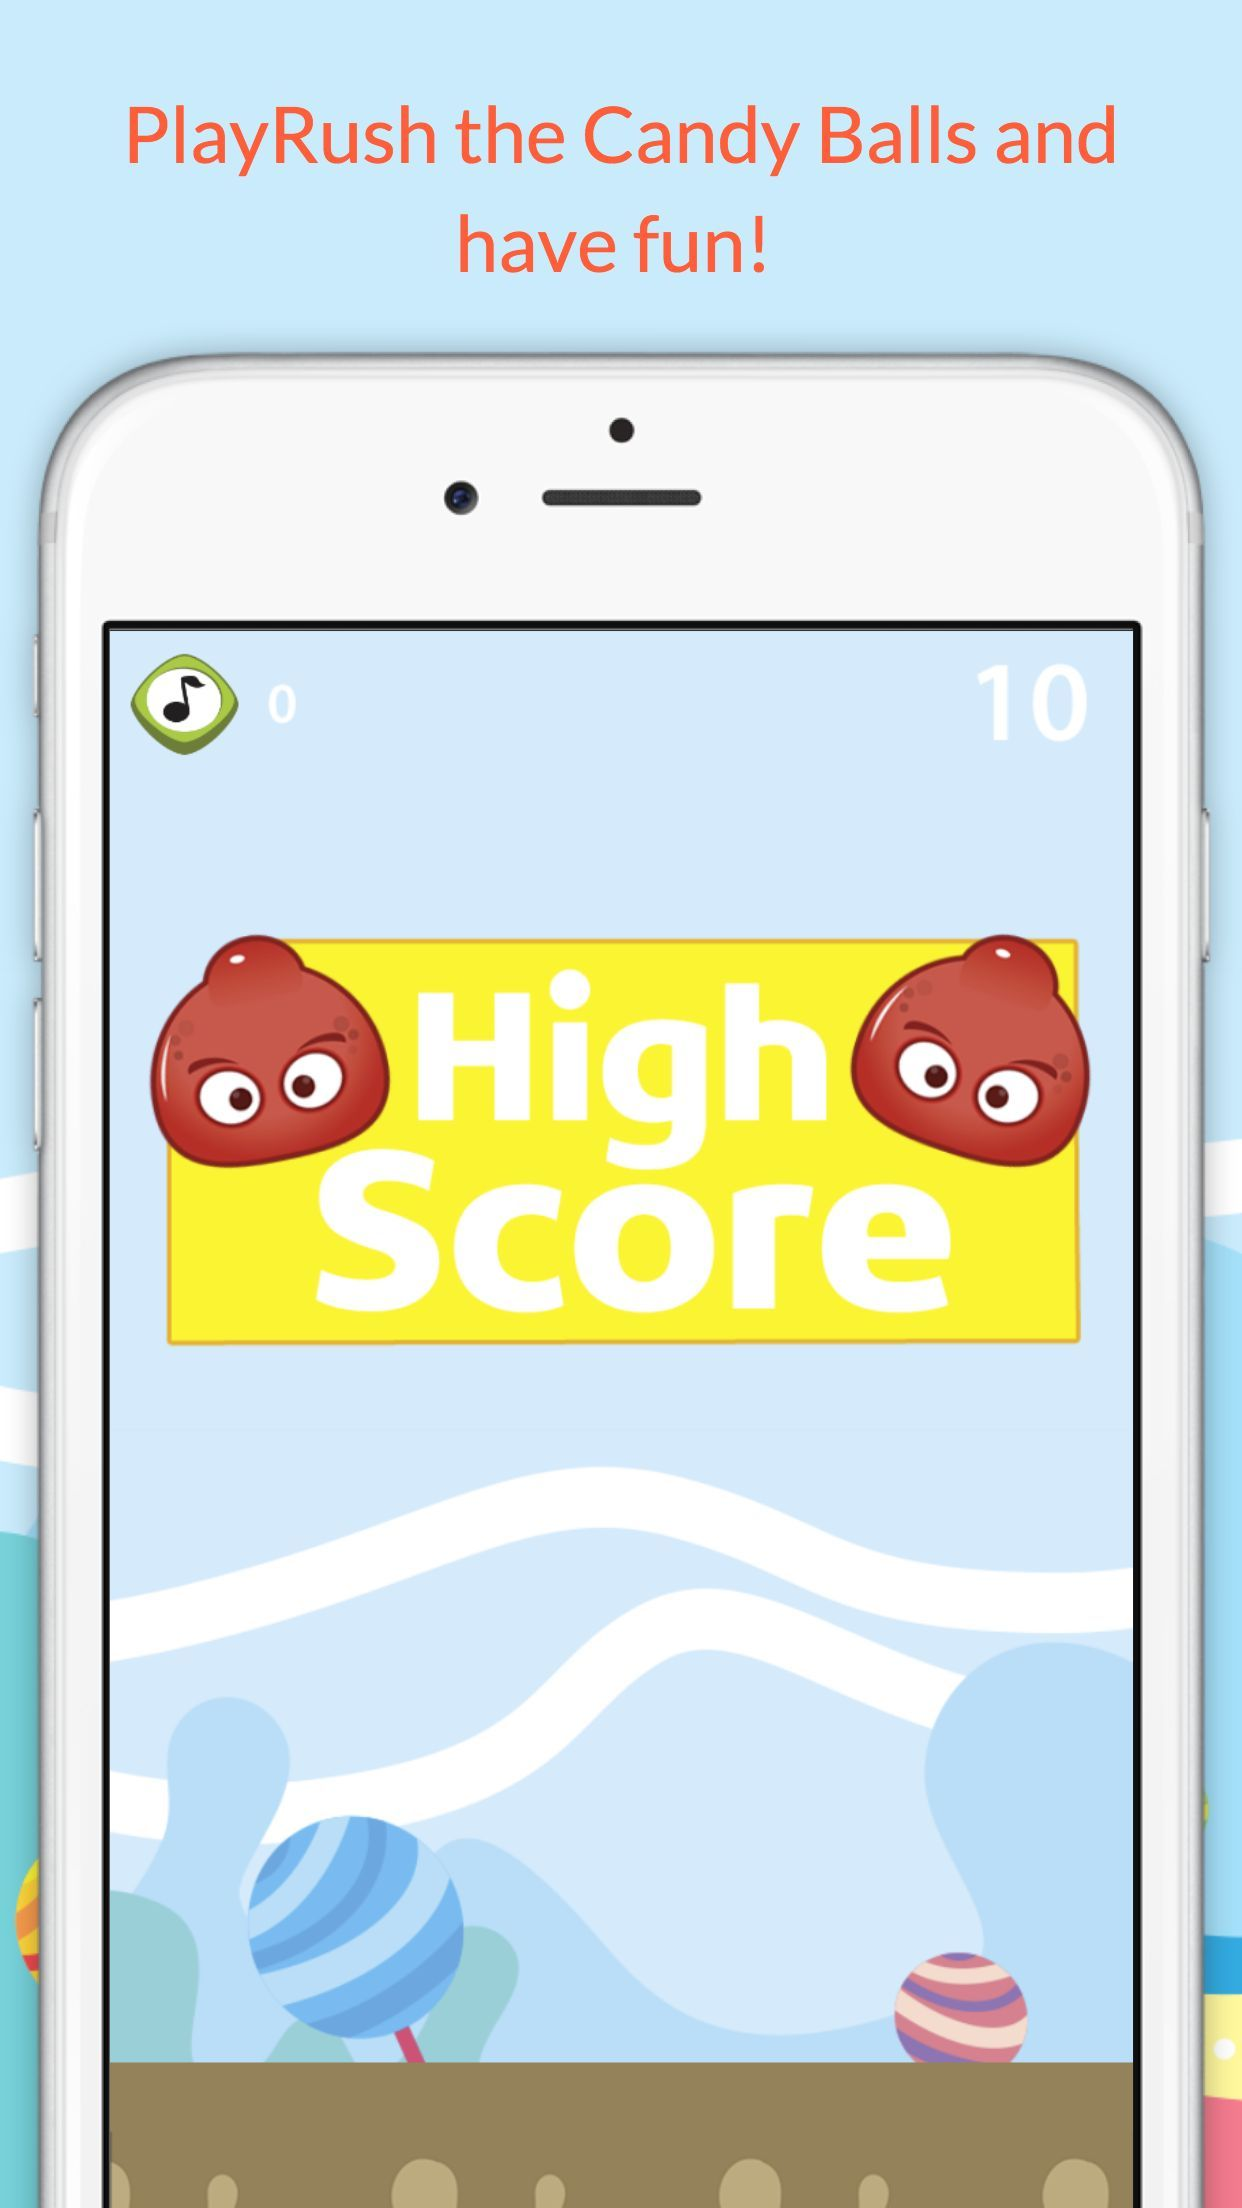 Fun Addicting Game Apps - Rush the candy balls is very simple addictive game that let you have fun for hours